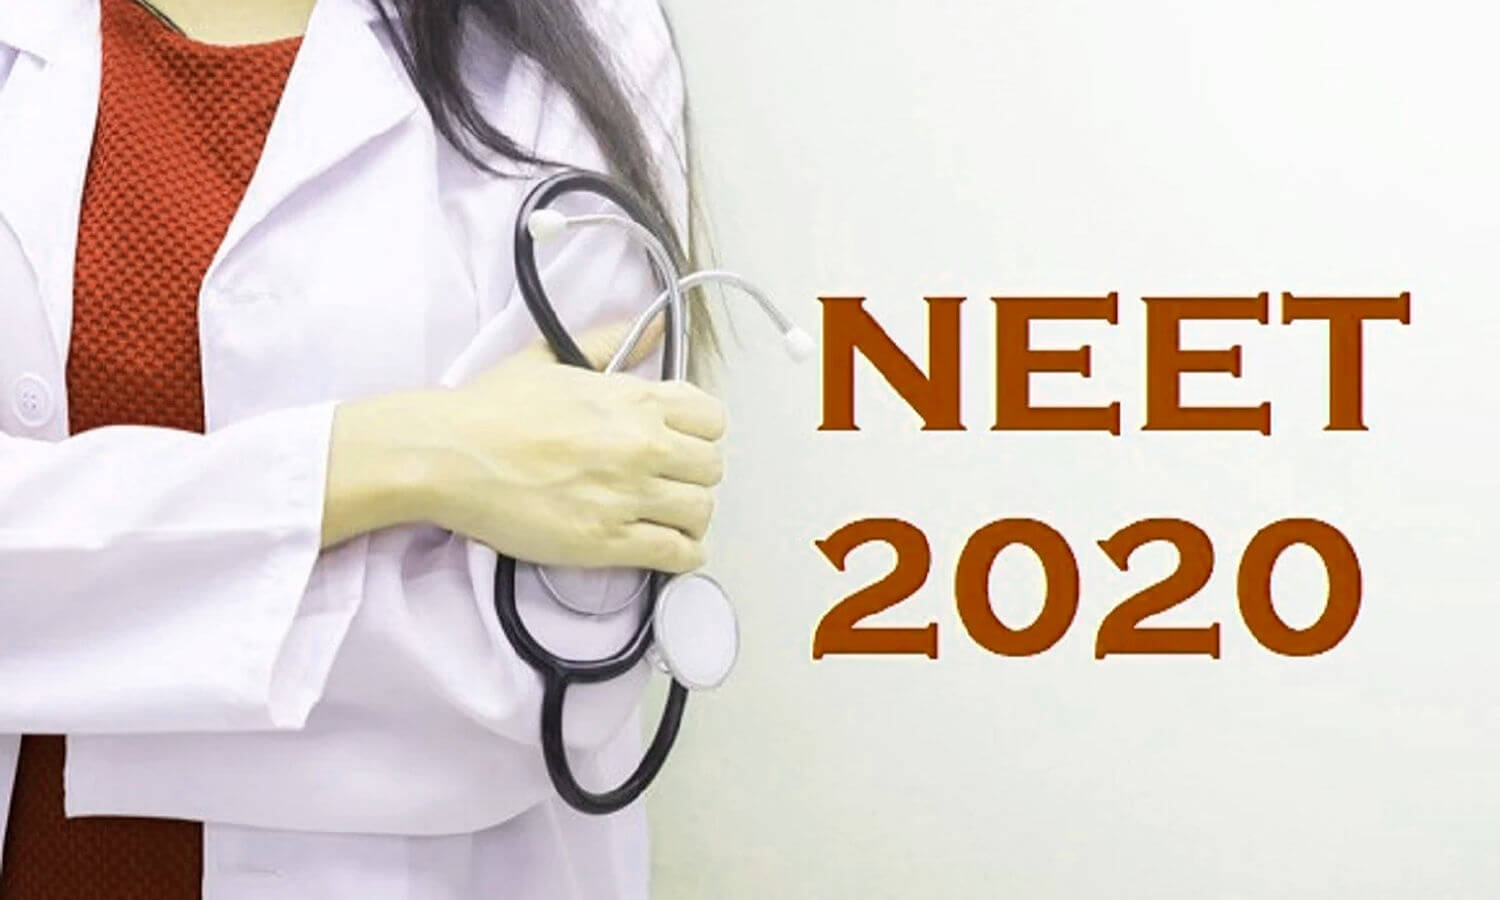 NTA gears up for medical entrance exam NEET as JEE Main concludes.